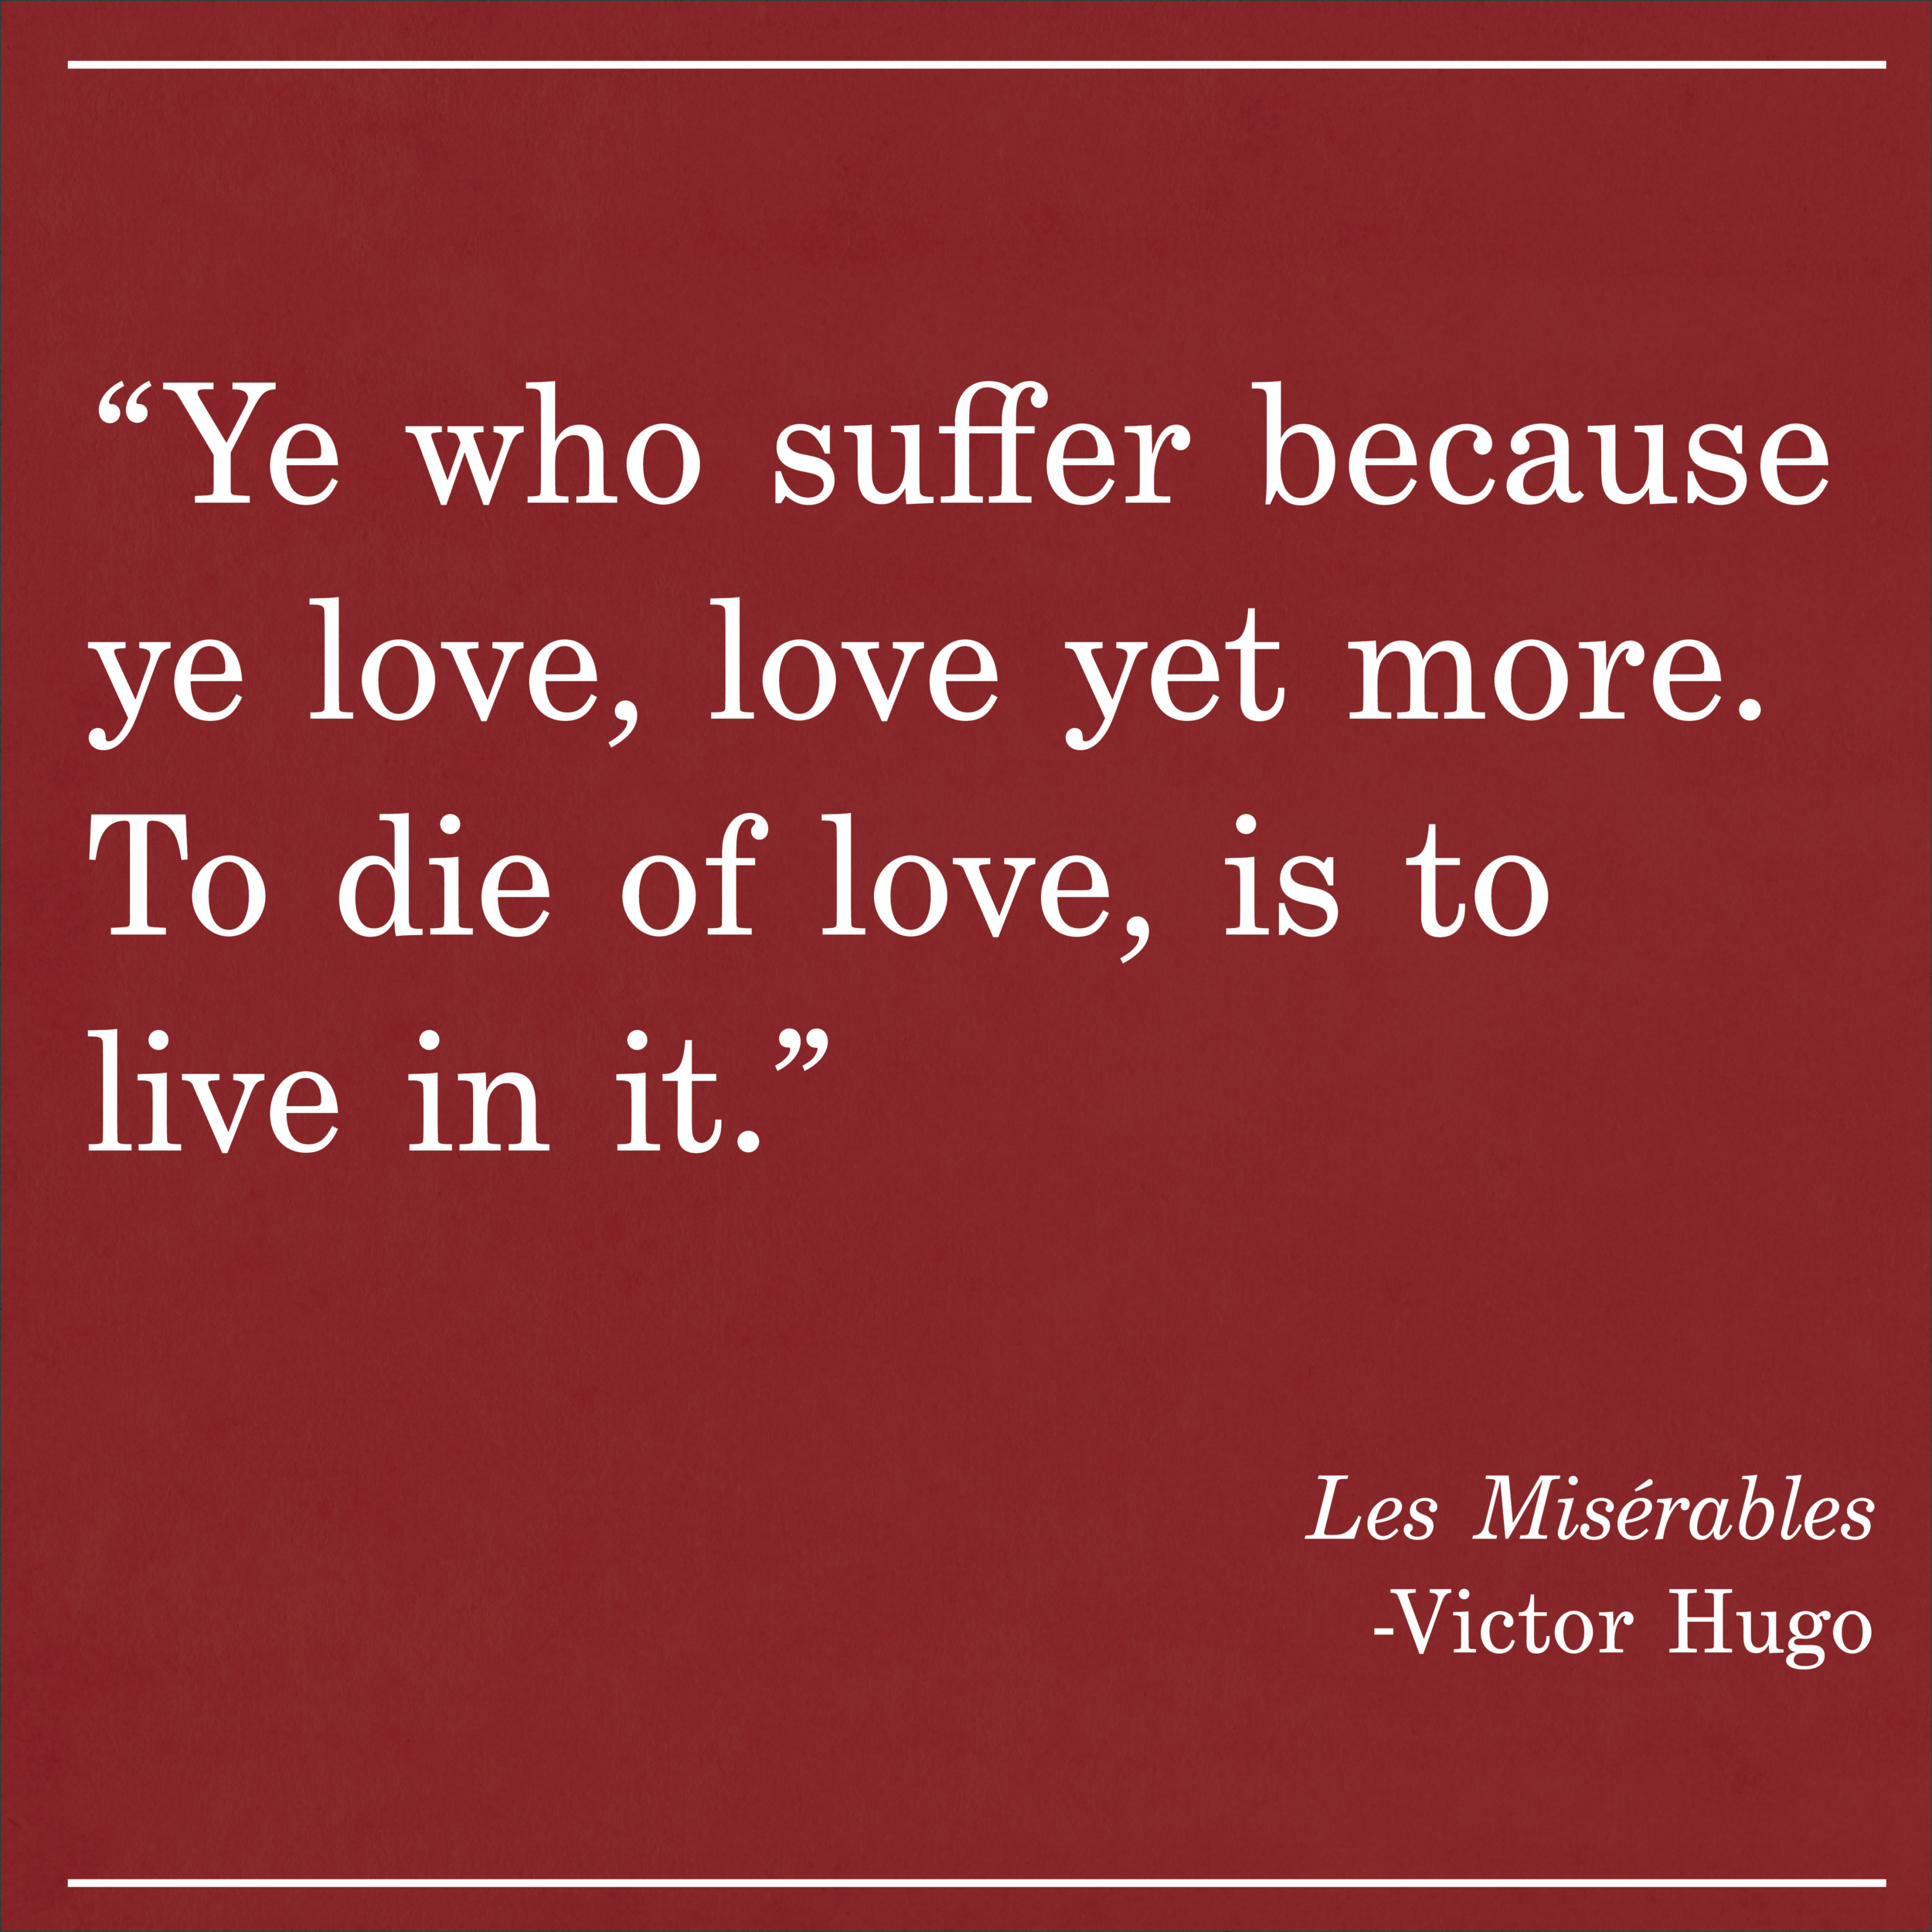 Daily Quote Les Miserables by Victor Hugo